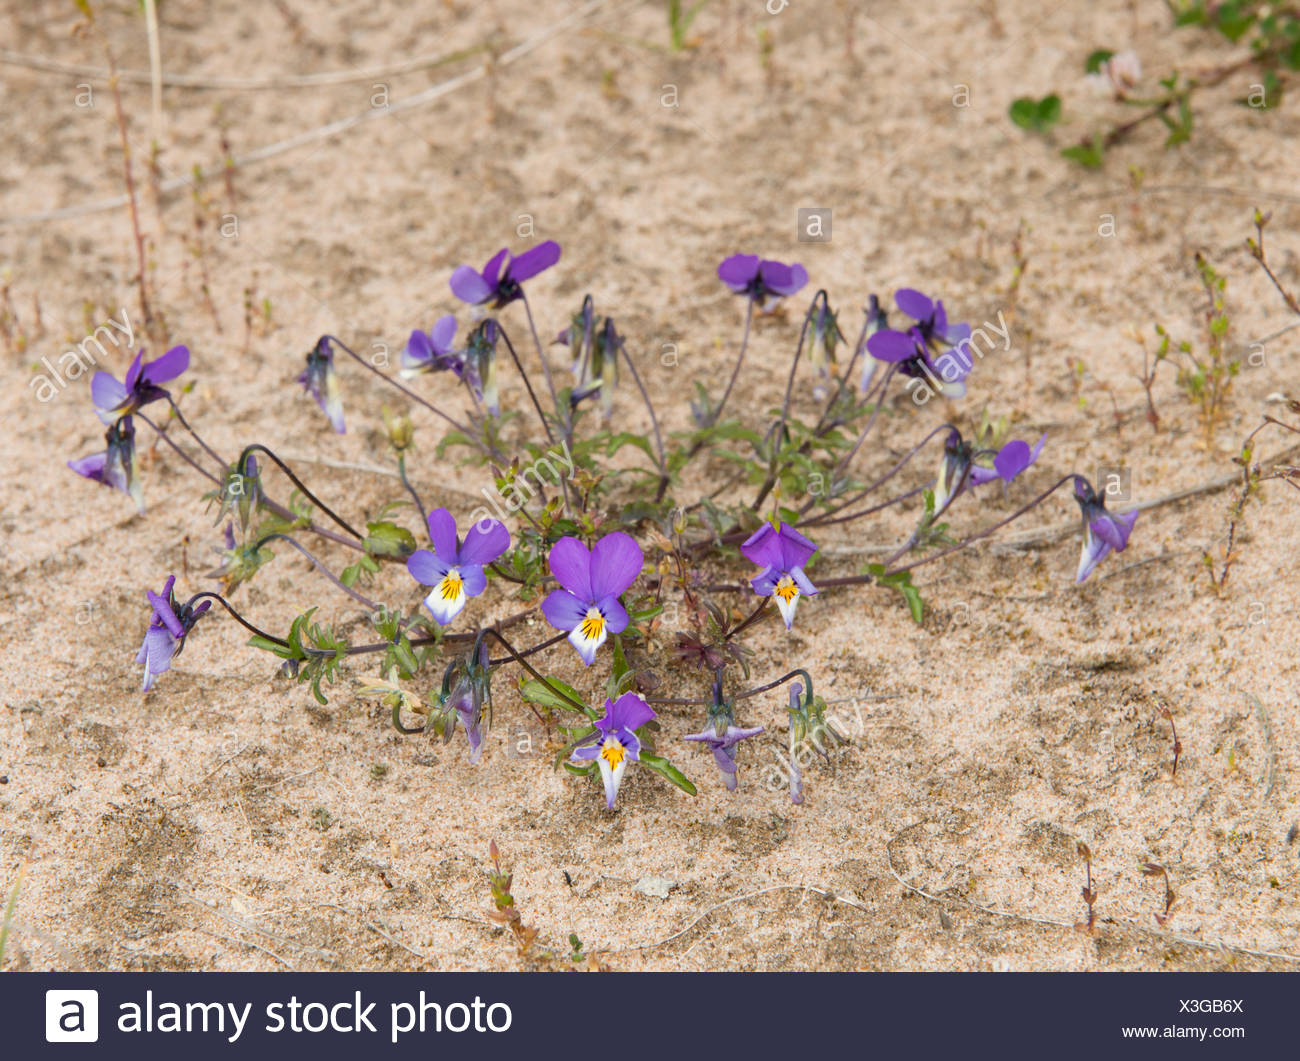 Wild Pansy Viola tricolor growing in sand dunes on Sands of Forvie National Nature Reserve Aberdeenshire Scotland - Stock Image